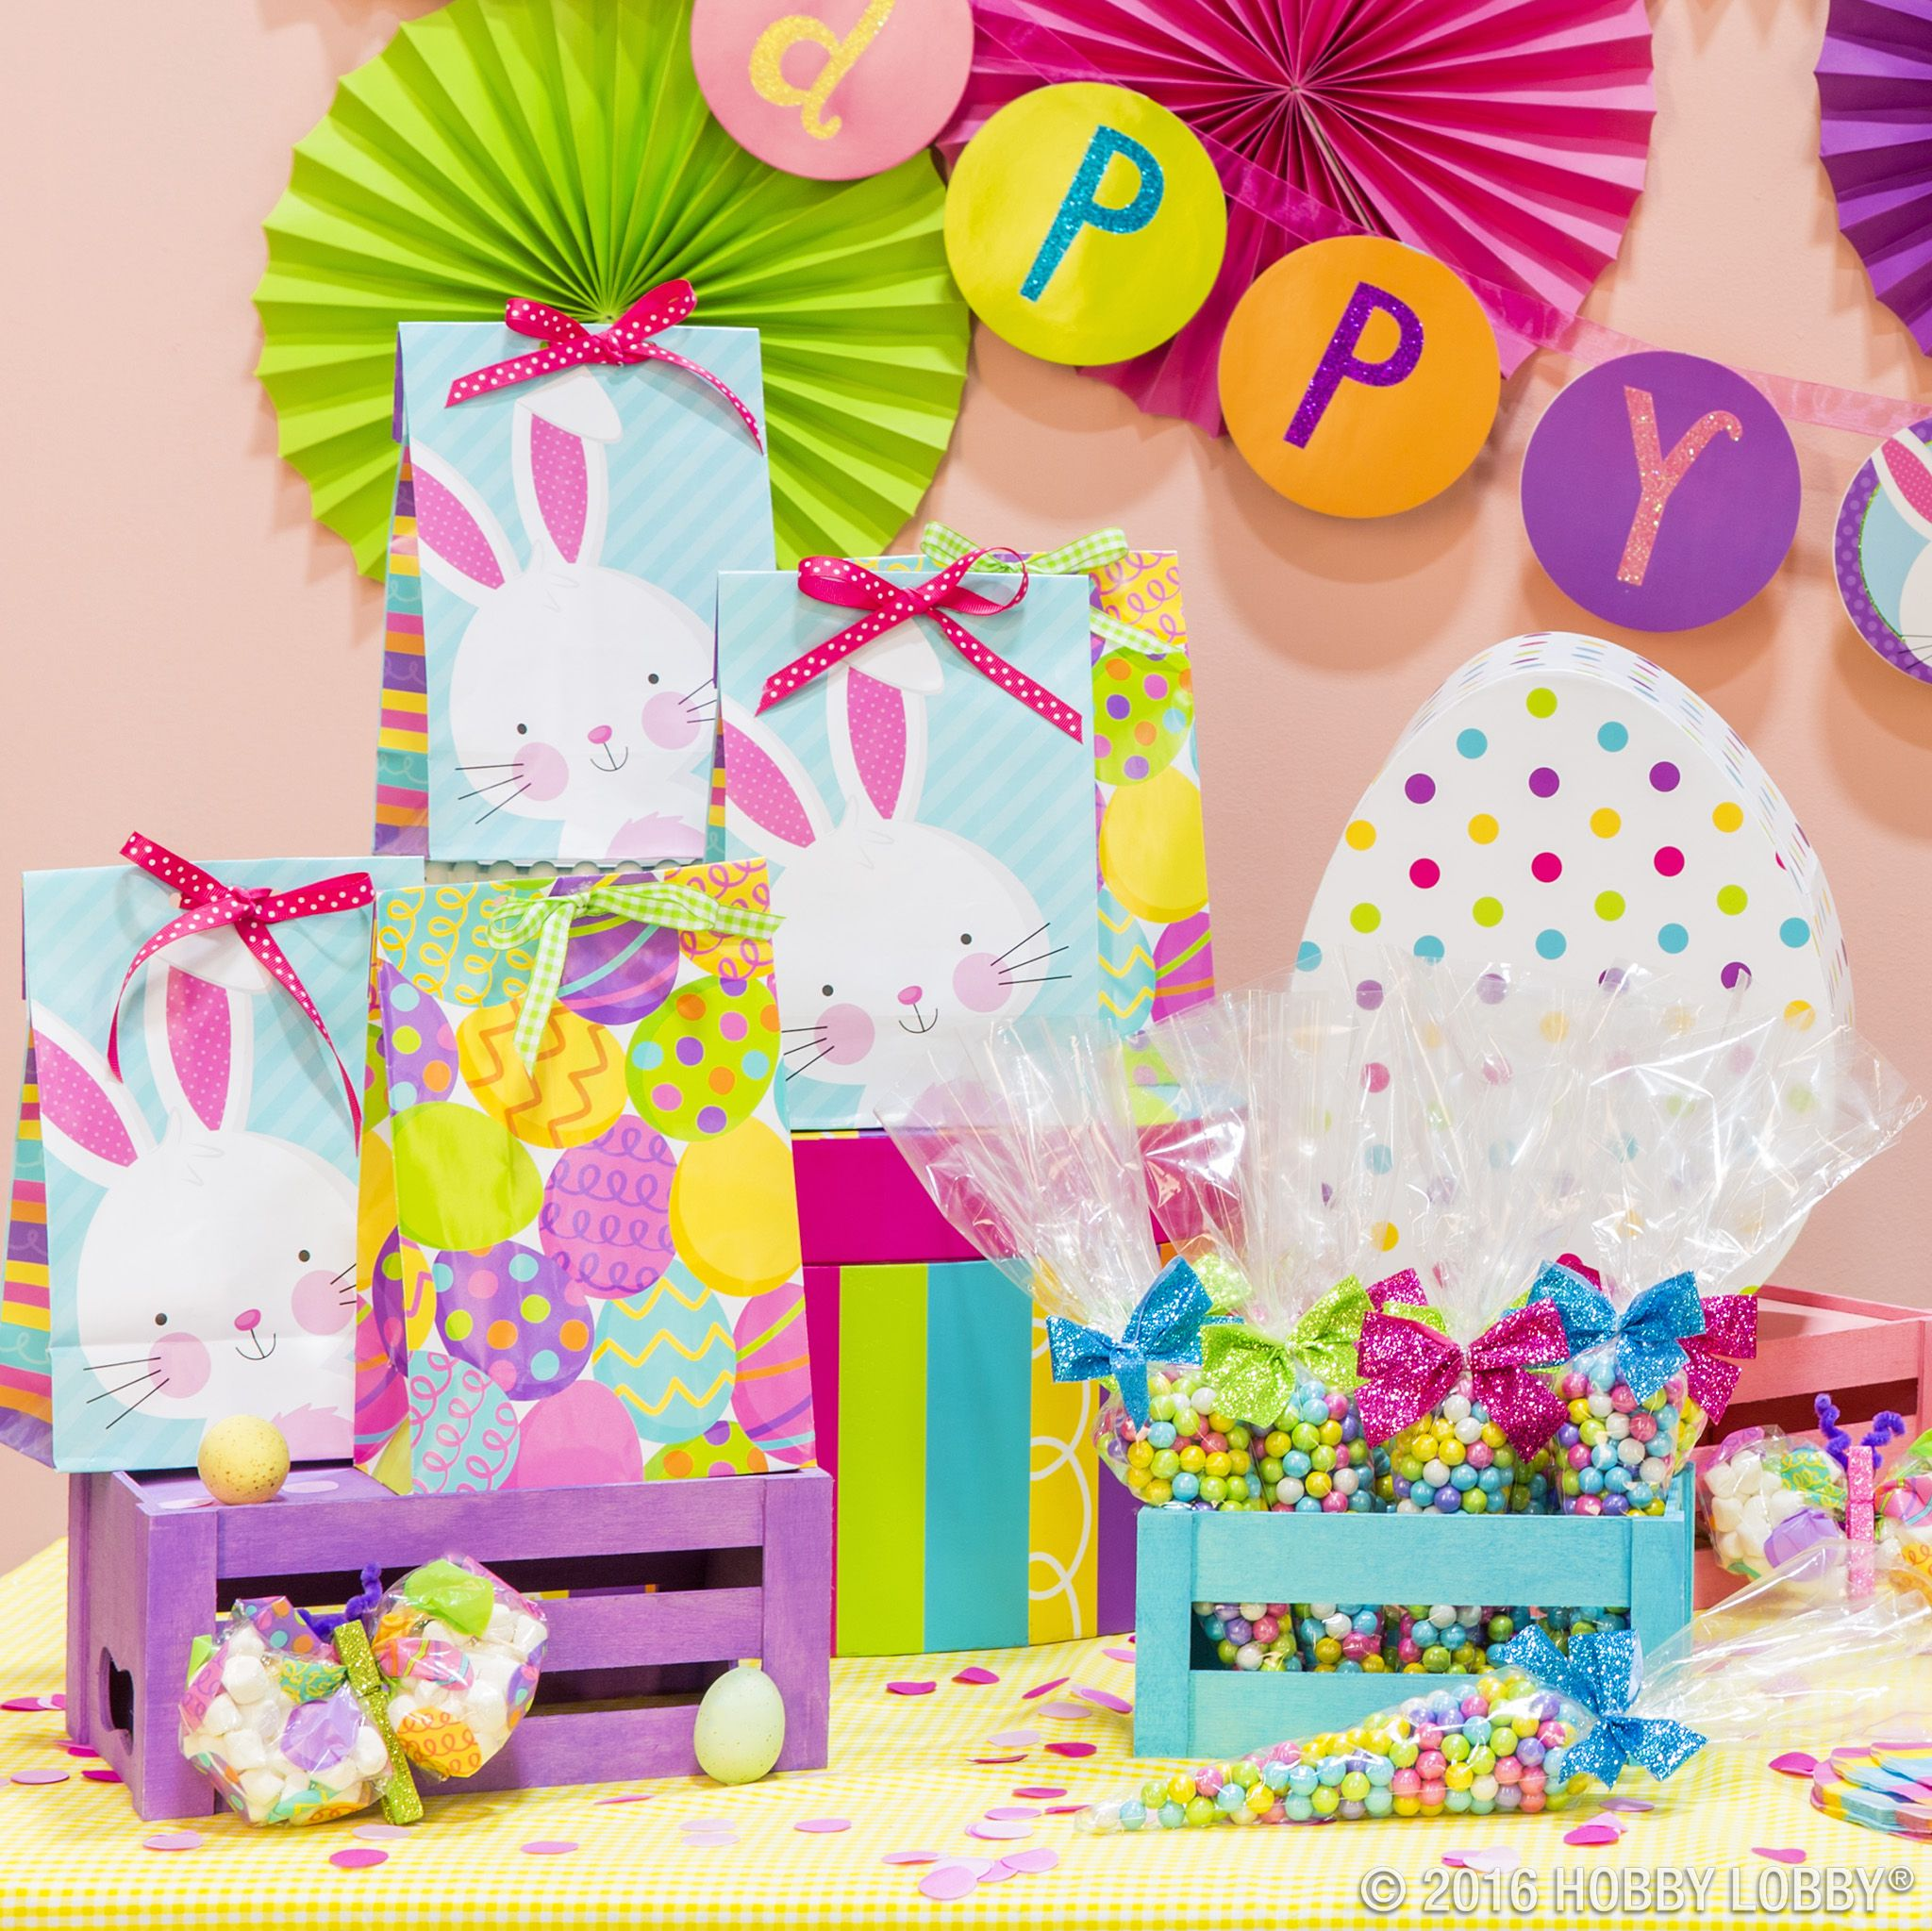 Get Egg-stra Colorful With Your Easter Décor This Year